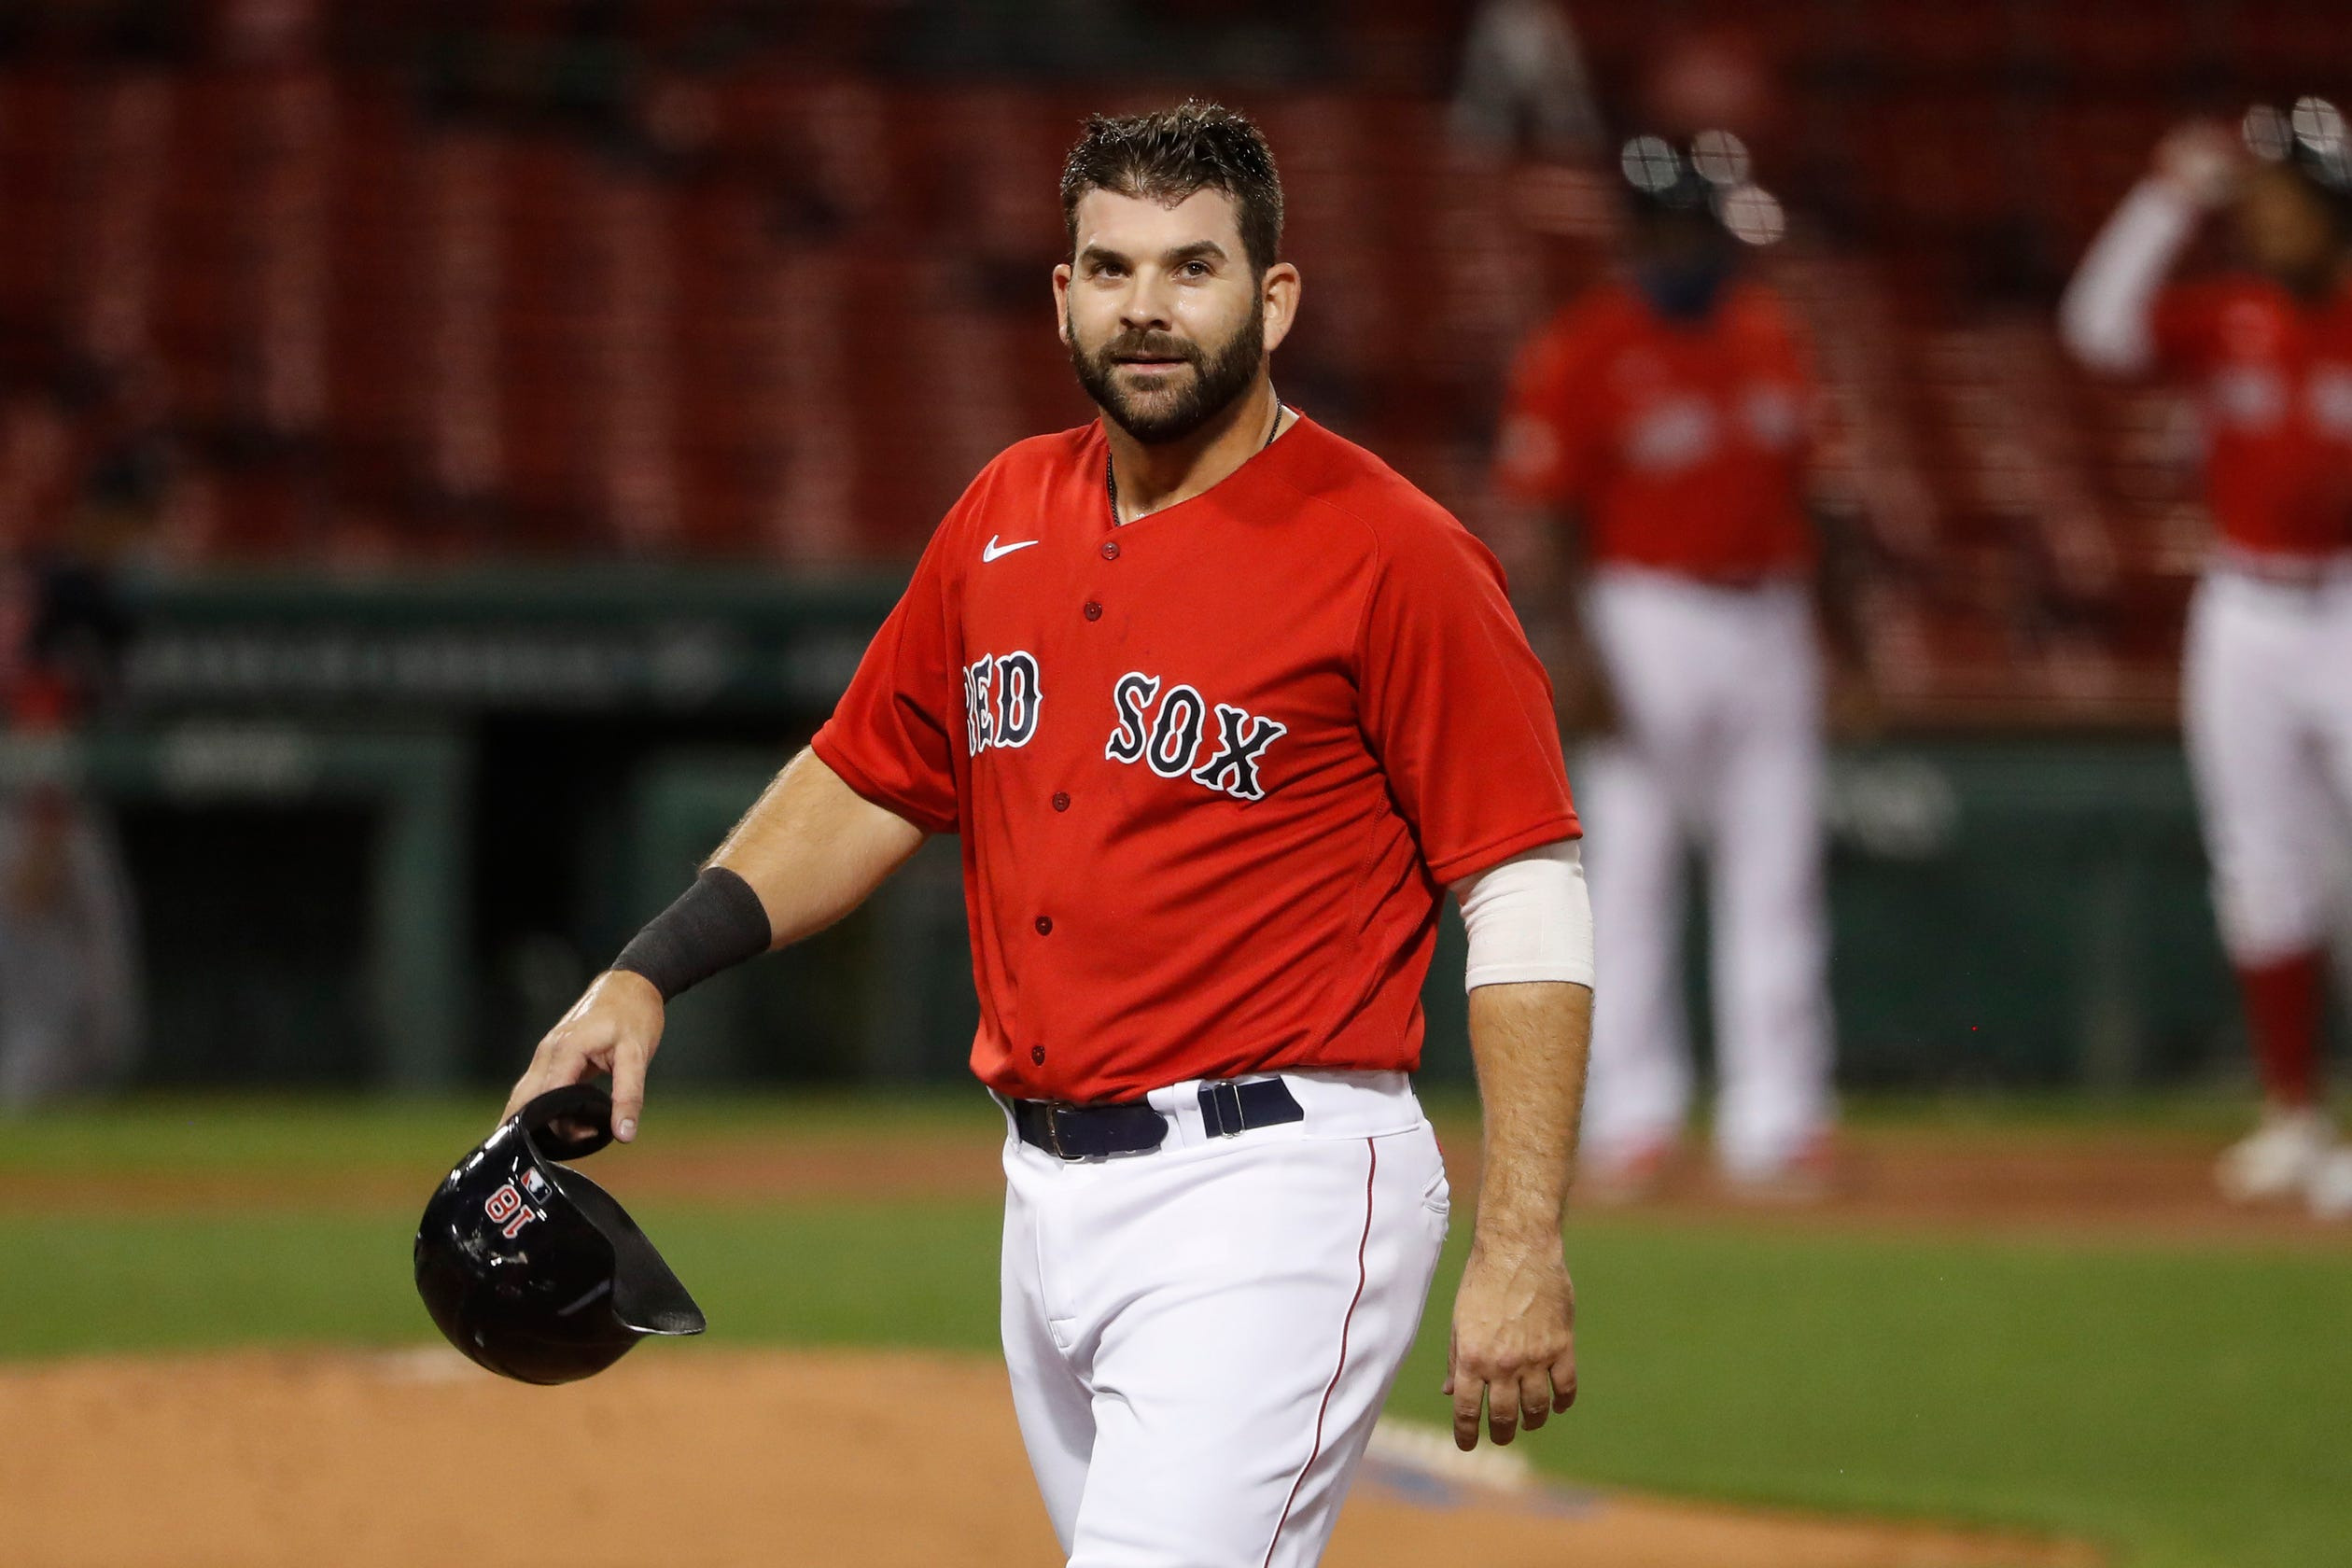 MLB Sunday trade tracker: Padres add punch with Mitch Moreland on day before deadline thumbnail